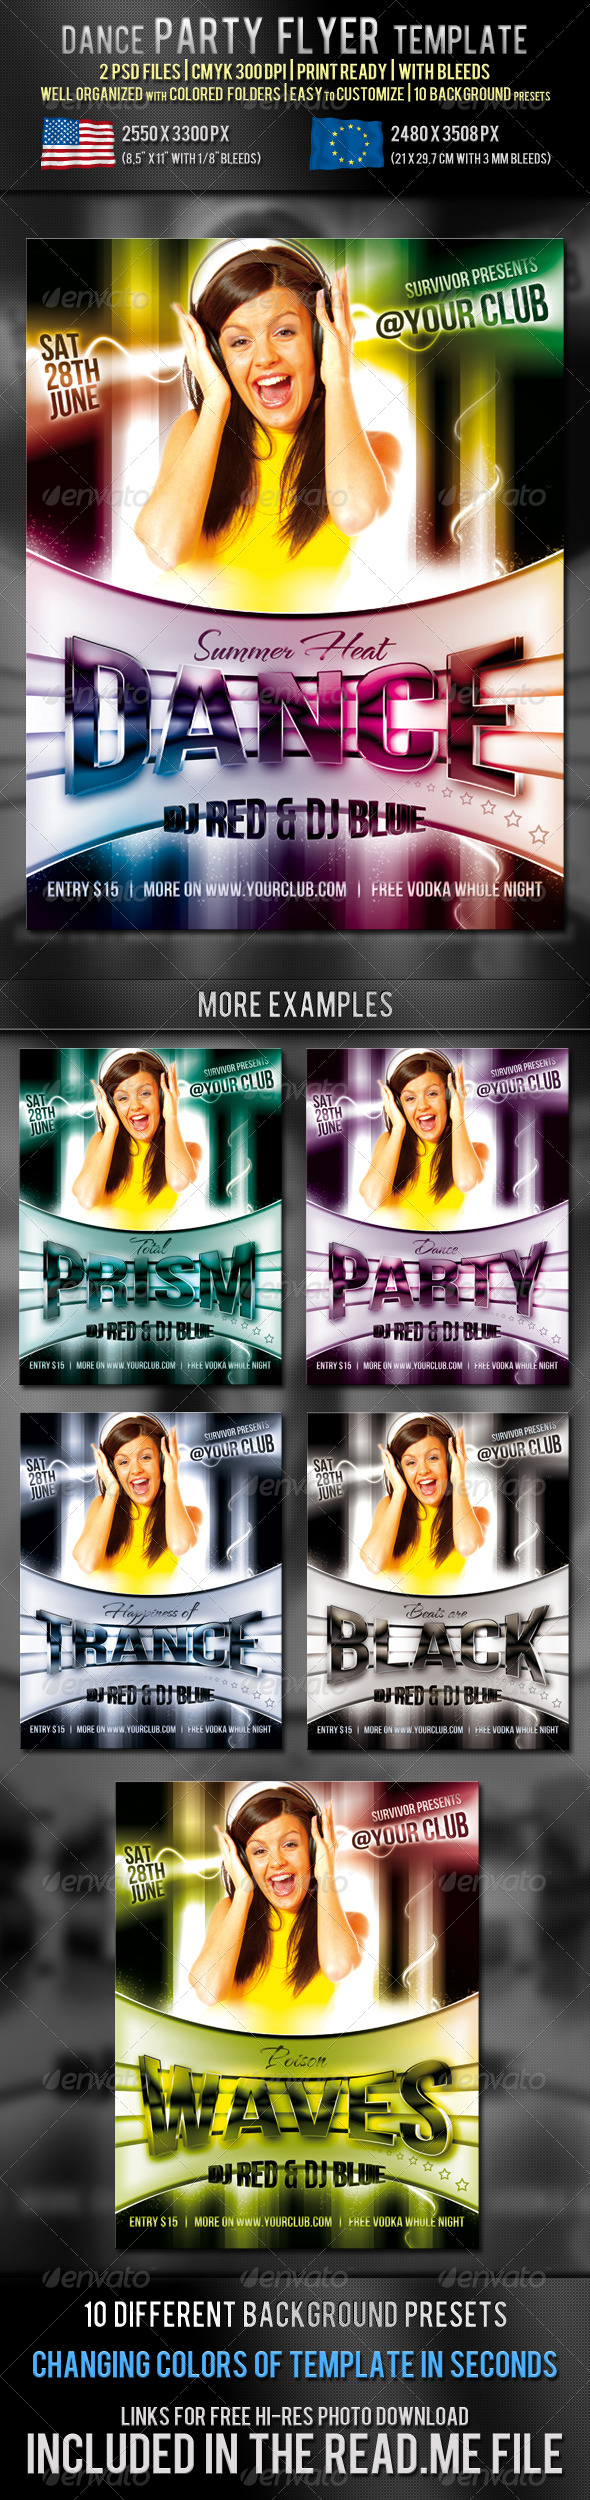 GraphicRiver Dance Party Flyer Template 234443